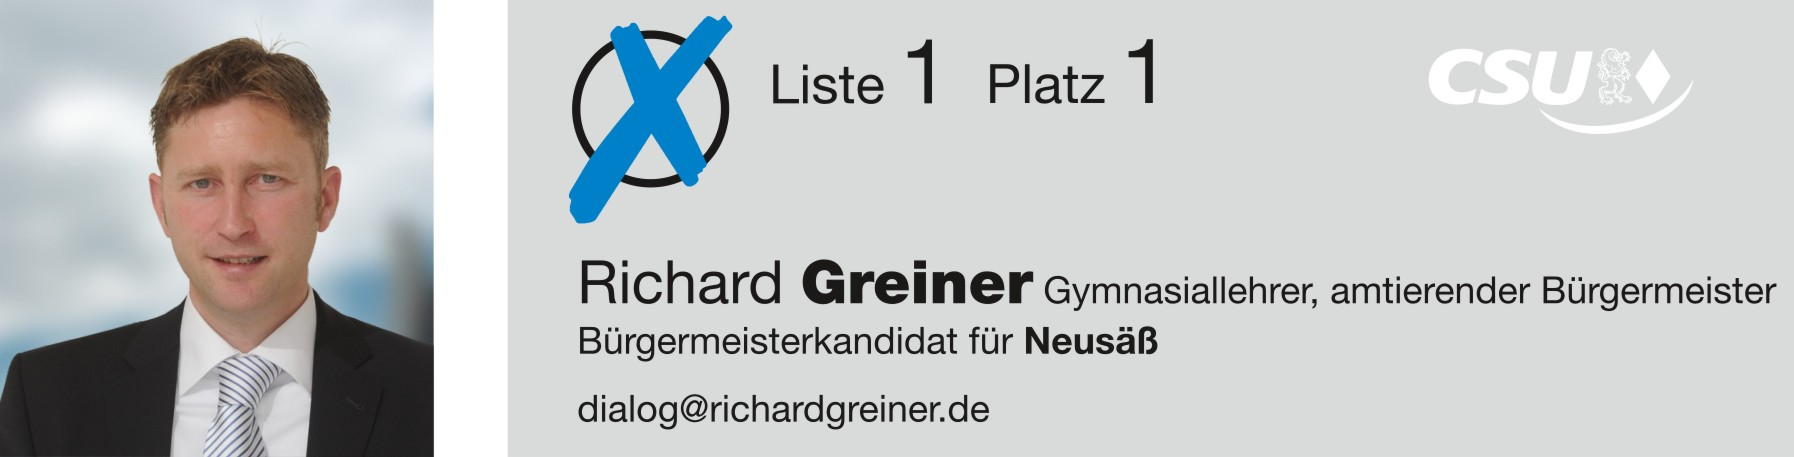 Richard Greiner